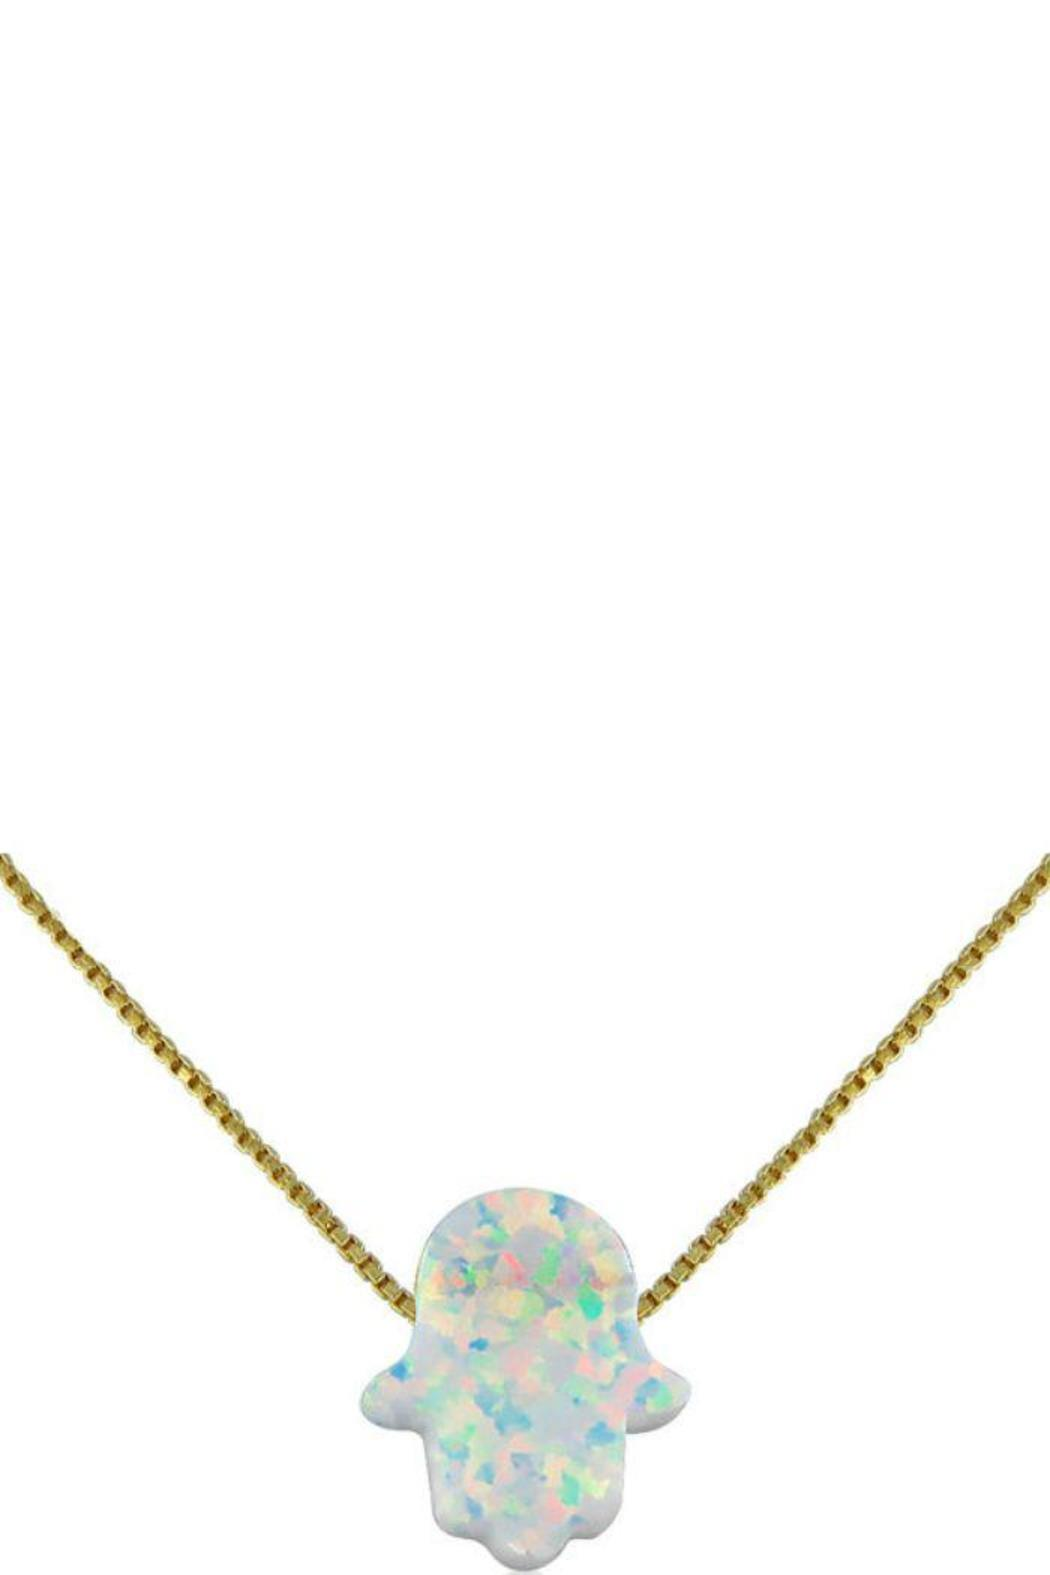 7f3cf73c6b276 Opal Hamsa Necklace from New York by Let's Accessorize — Shoptiques